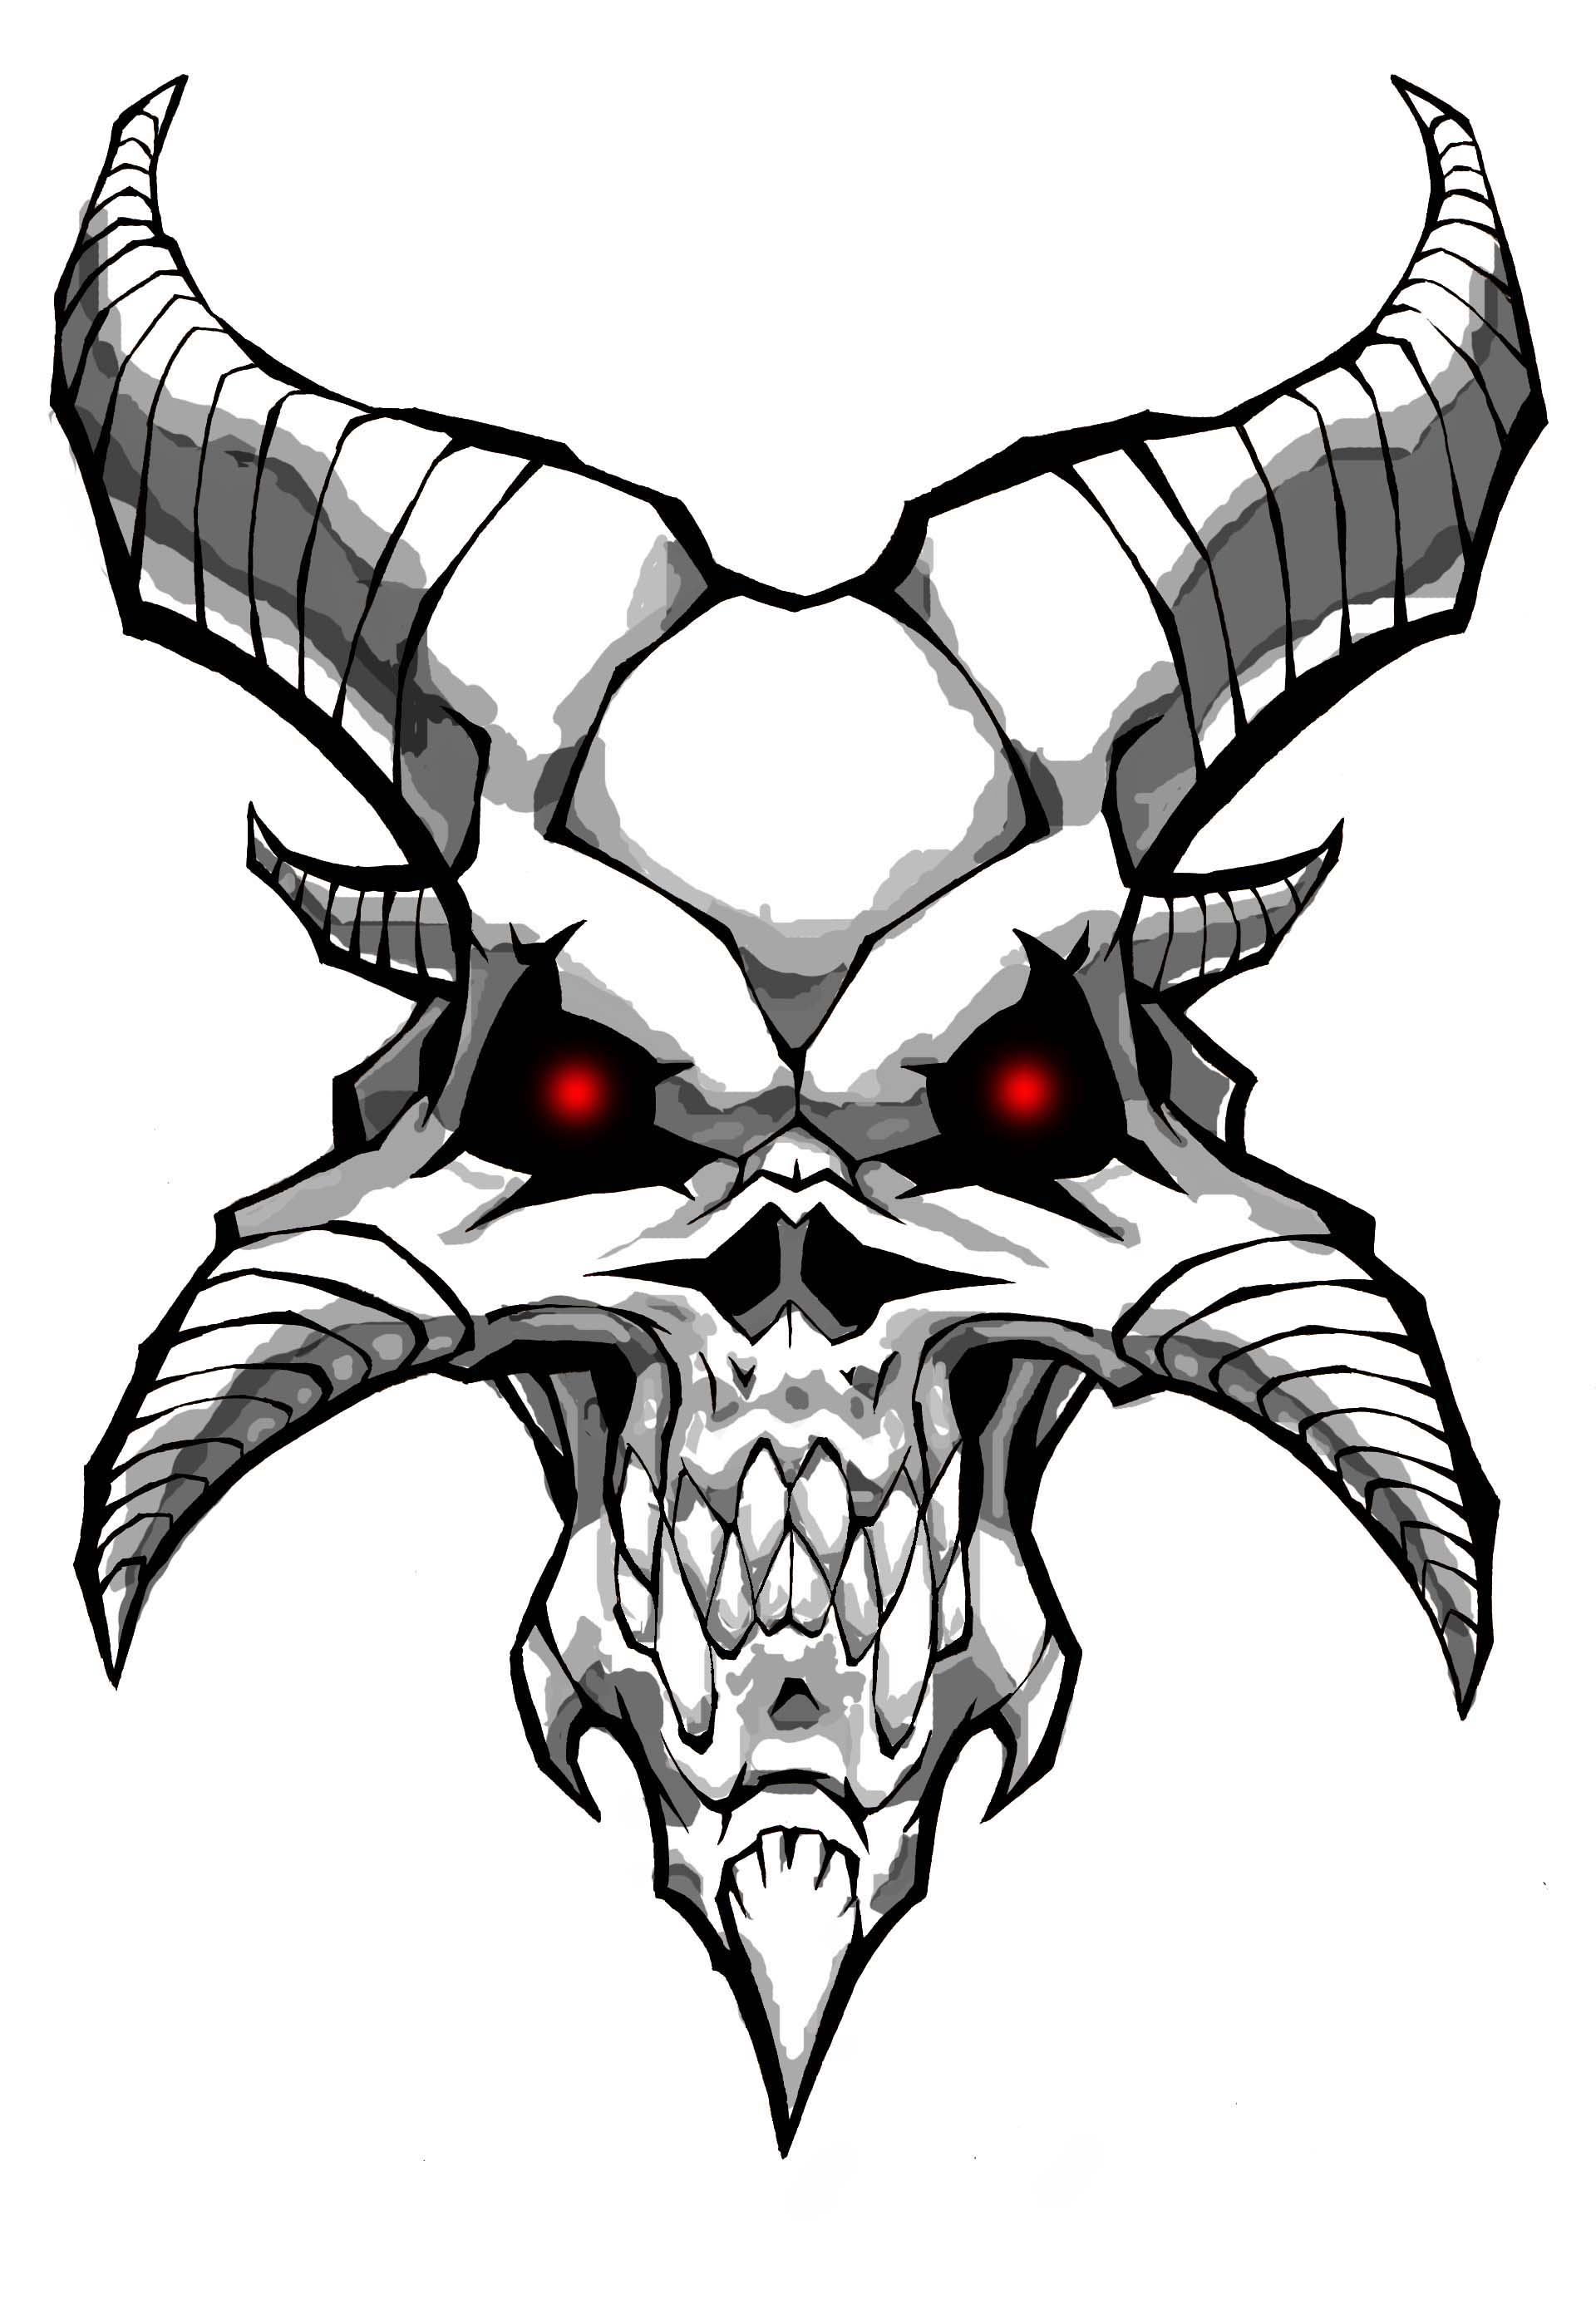 Demon skull by williamsquid